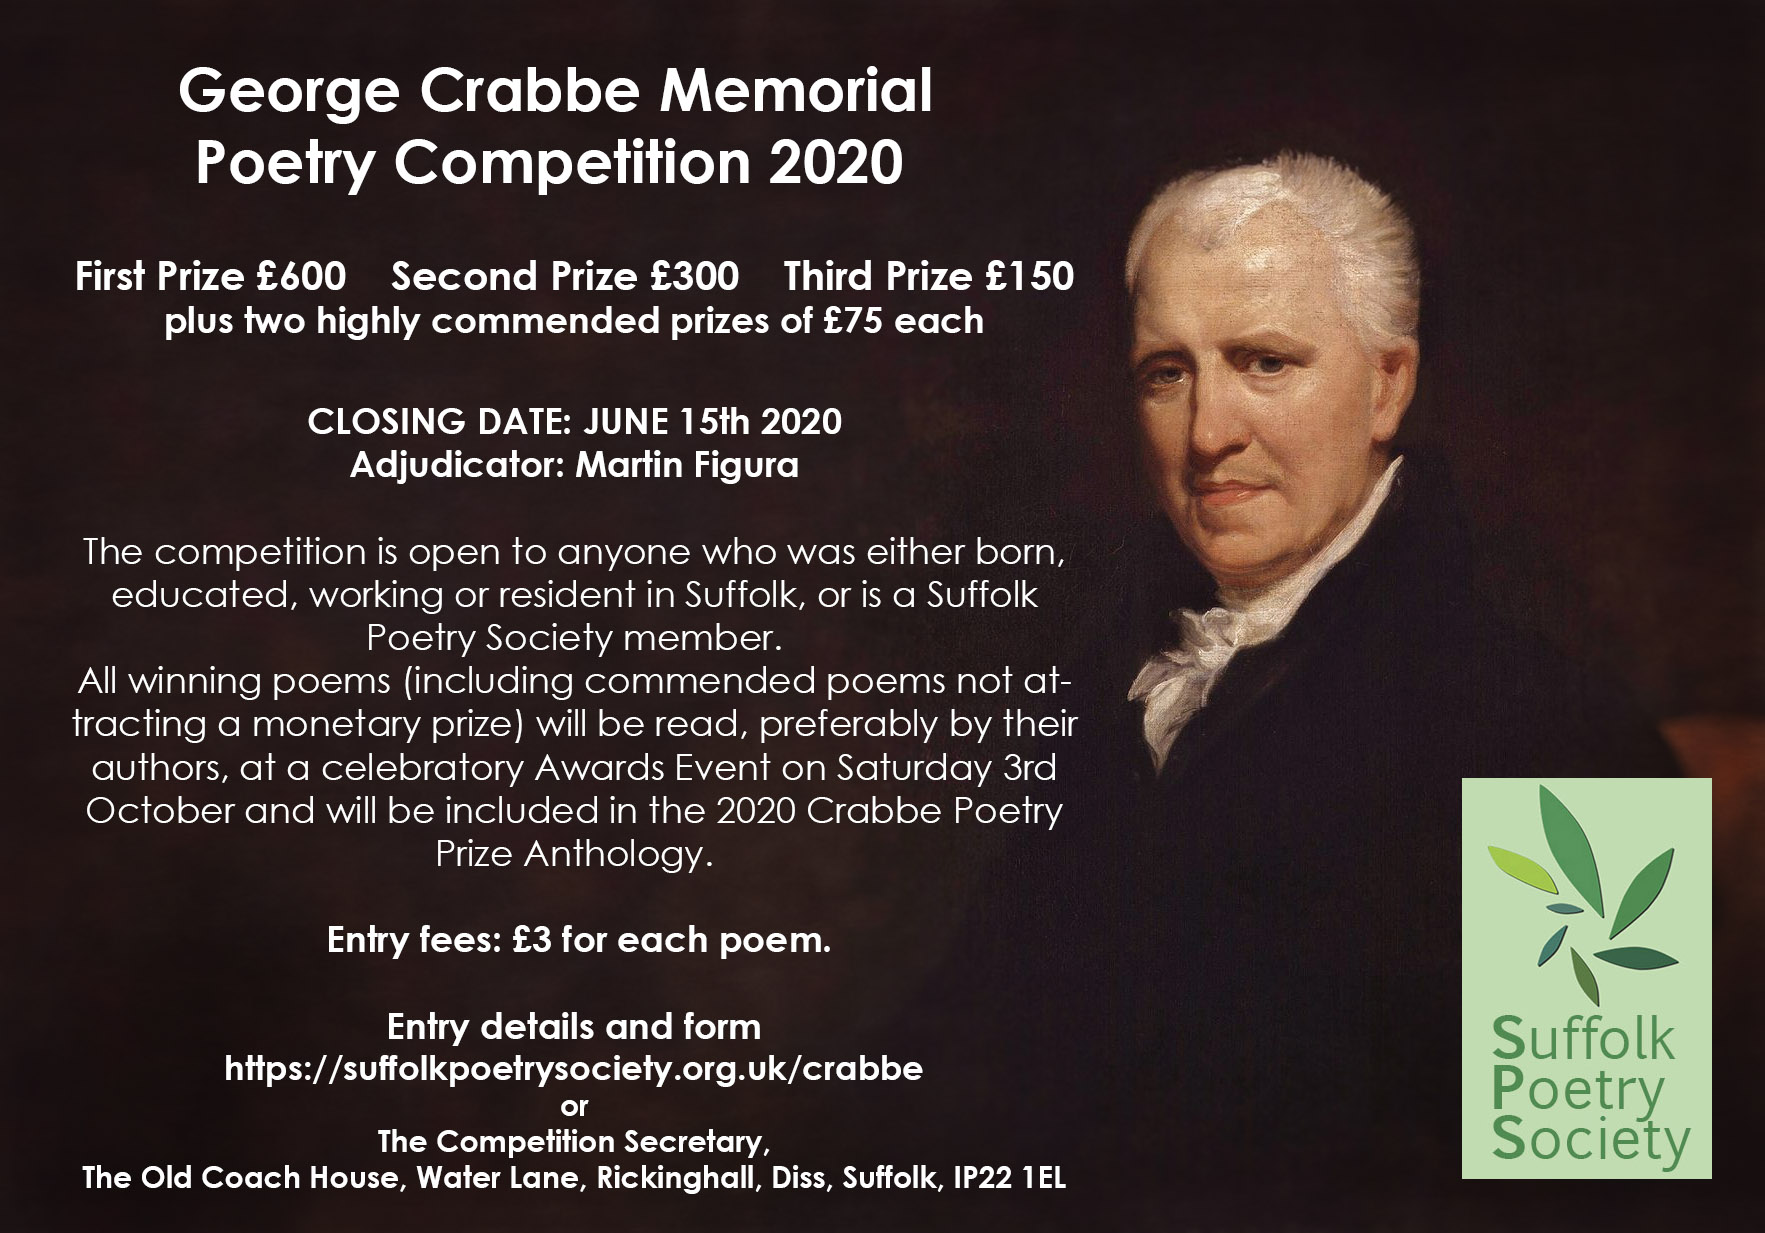 Crabbe comp image